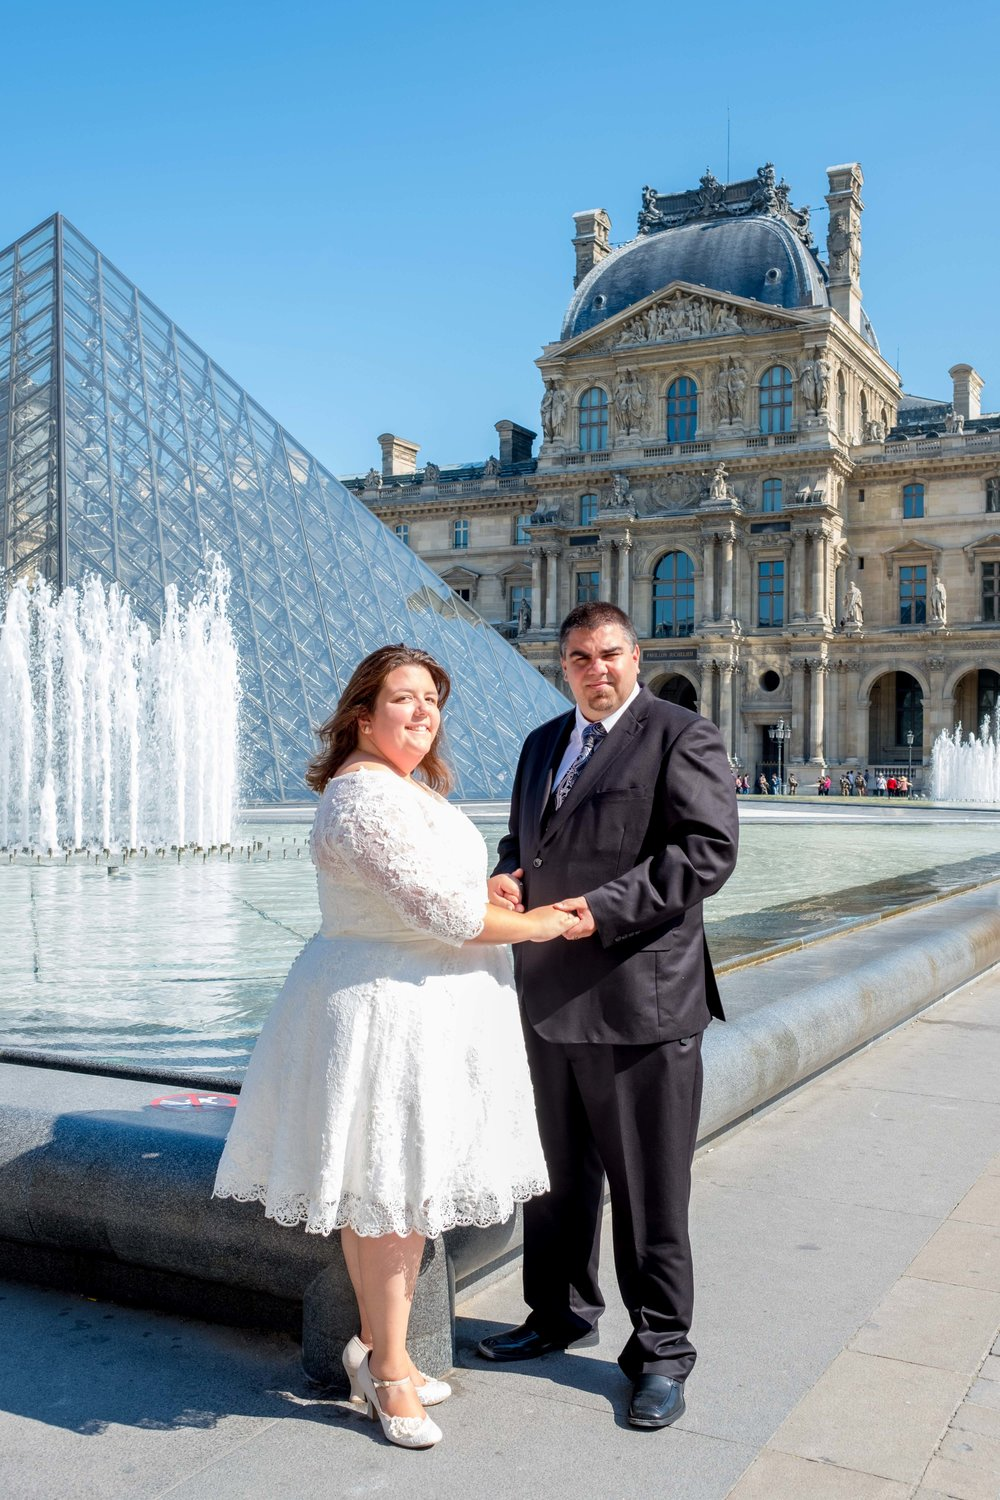 Newlyweds in front of the Louvre Museum in Paris